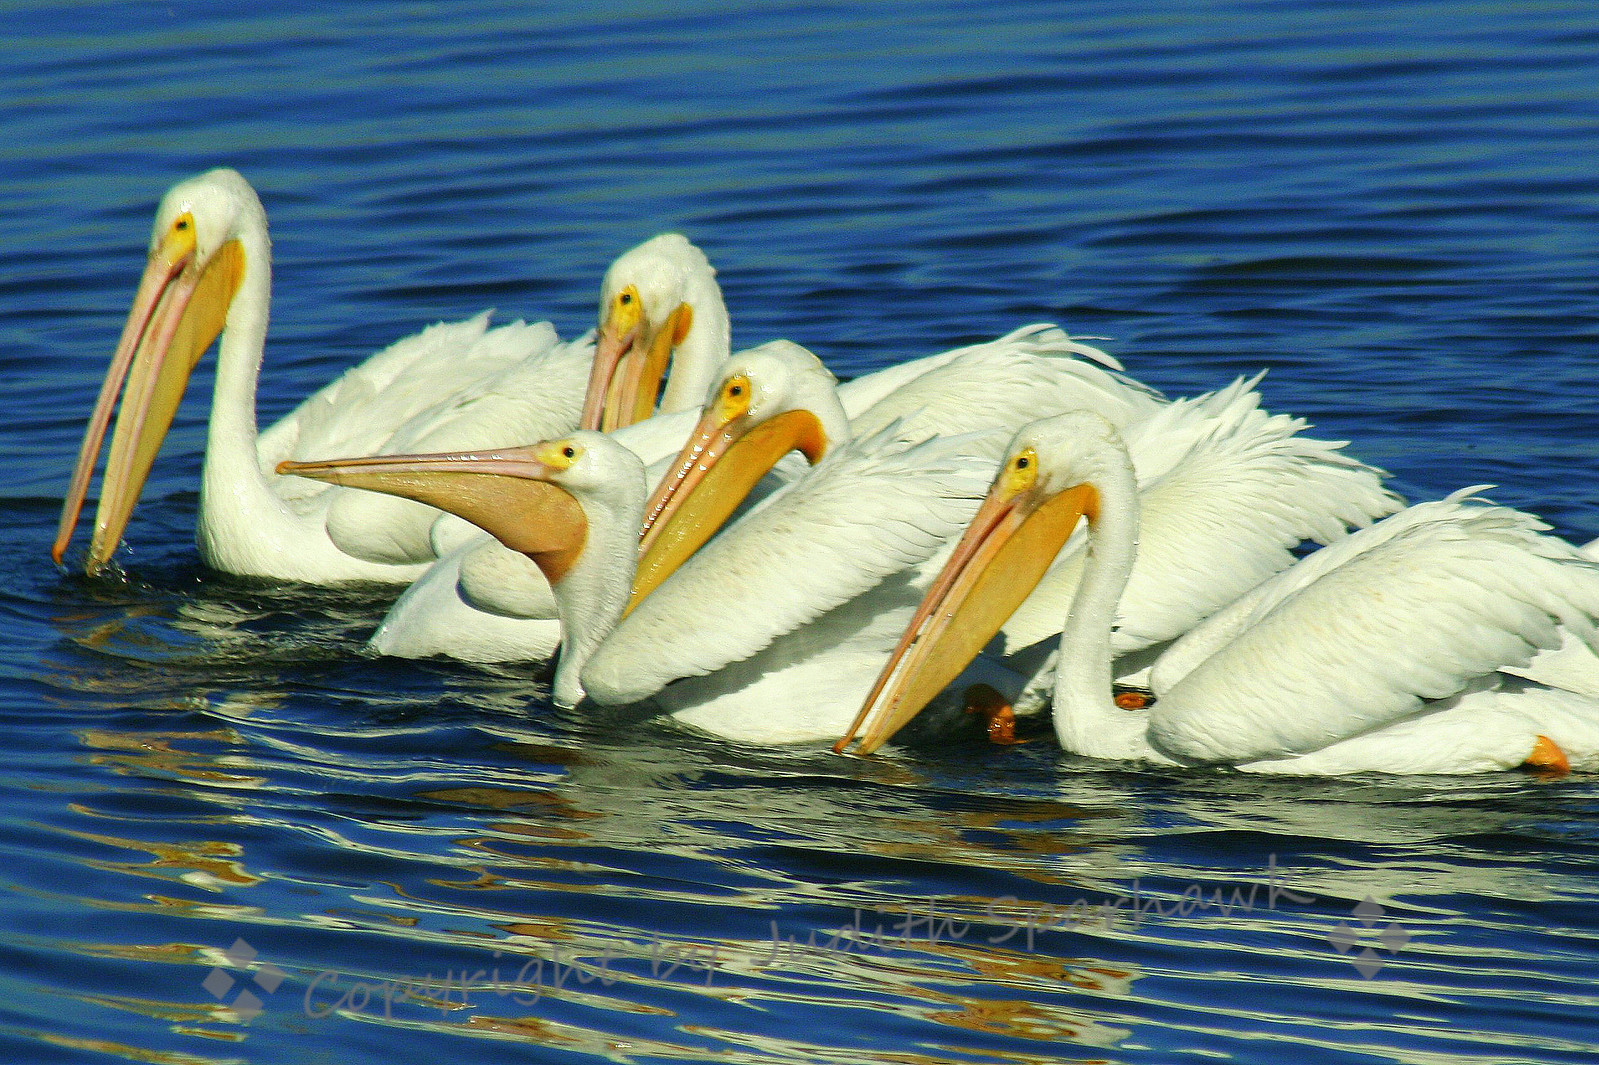 Pelican Party ~ These white pelicans were swimming together for their group feeding.  They were cooperative enough to pose for me with all their heads up at one time.